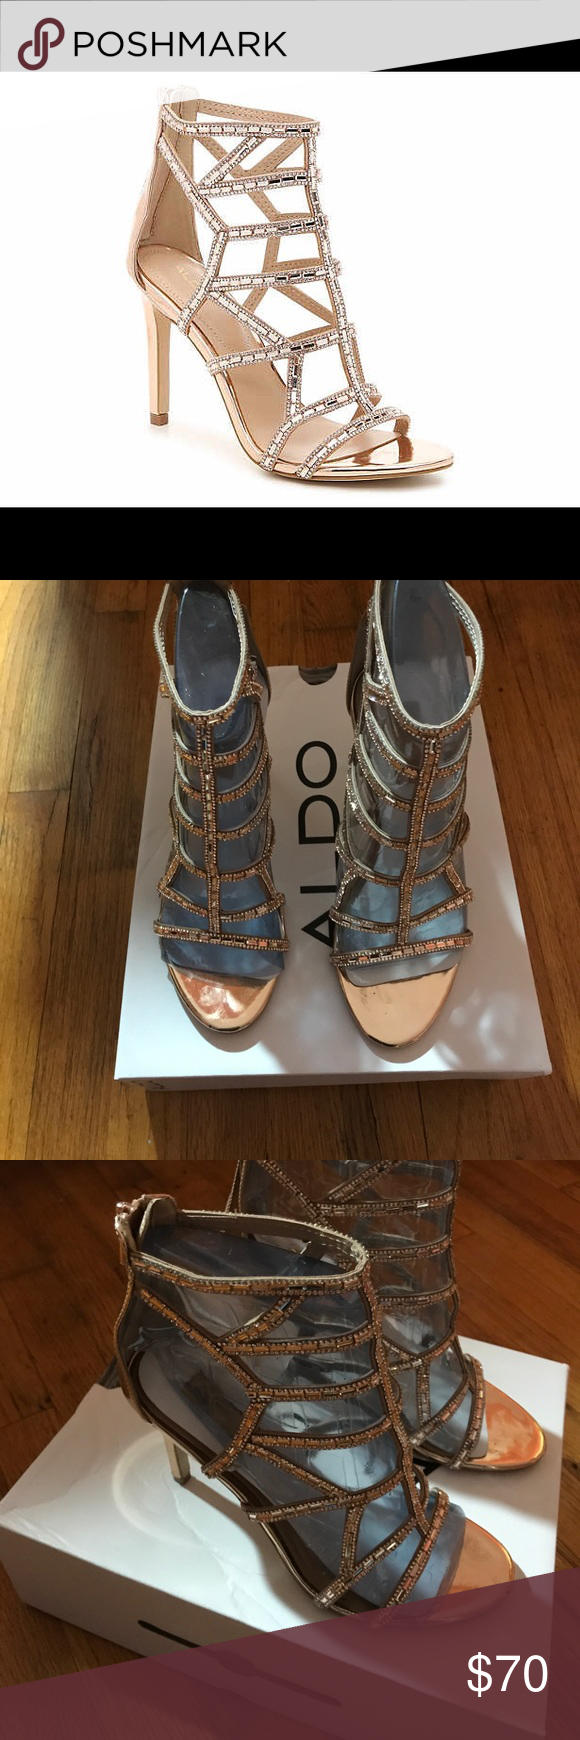 47ca0ae4ad64 Aldo Rose Gold Fidenza Sandal Gorgeous Rose Gold Heels for that perfect  night out